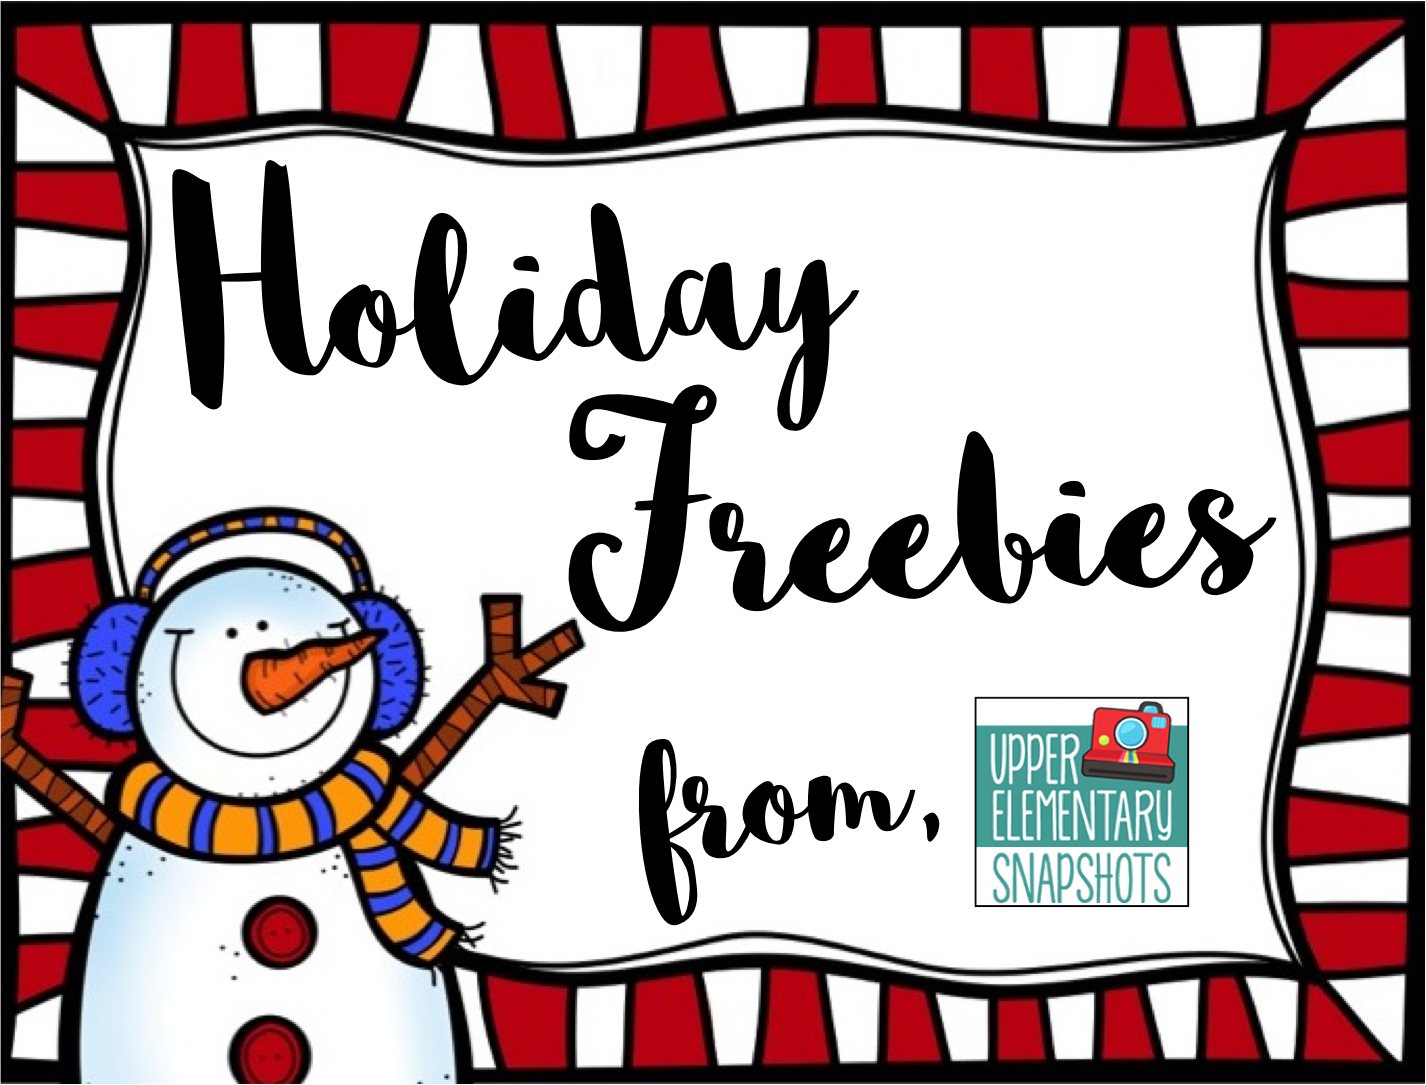 Holiday Freebies From Upper Elementary Snapshots